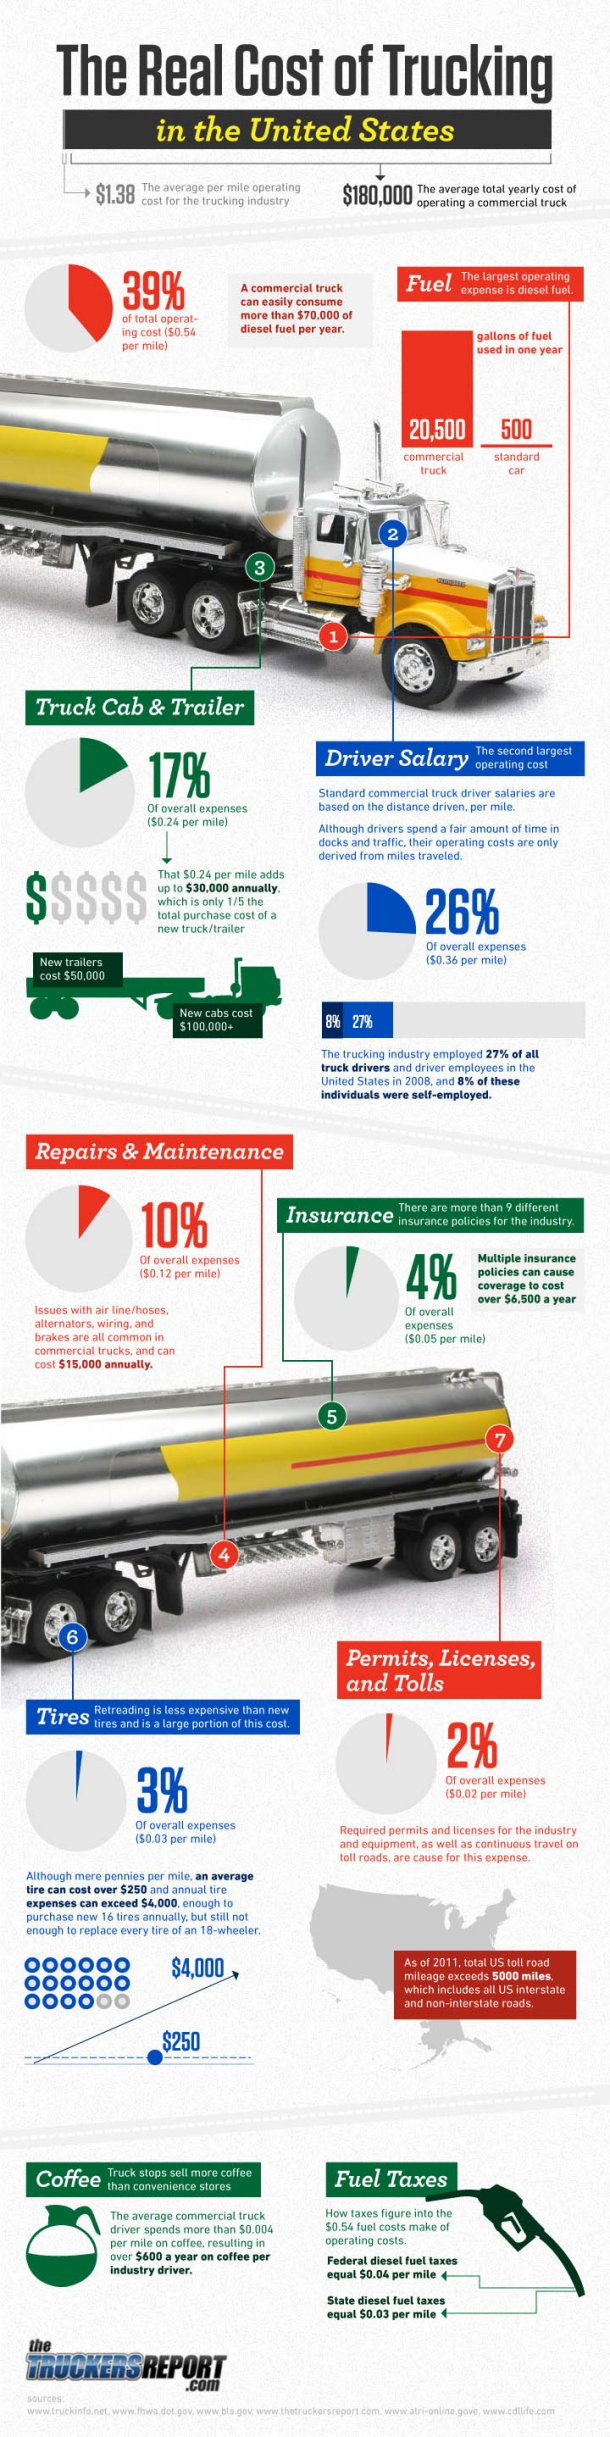 The Real Cost Of Trucking In The US #infograohic   HOT SHOT